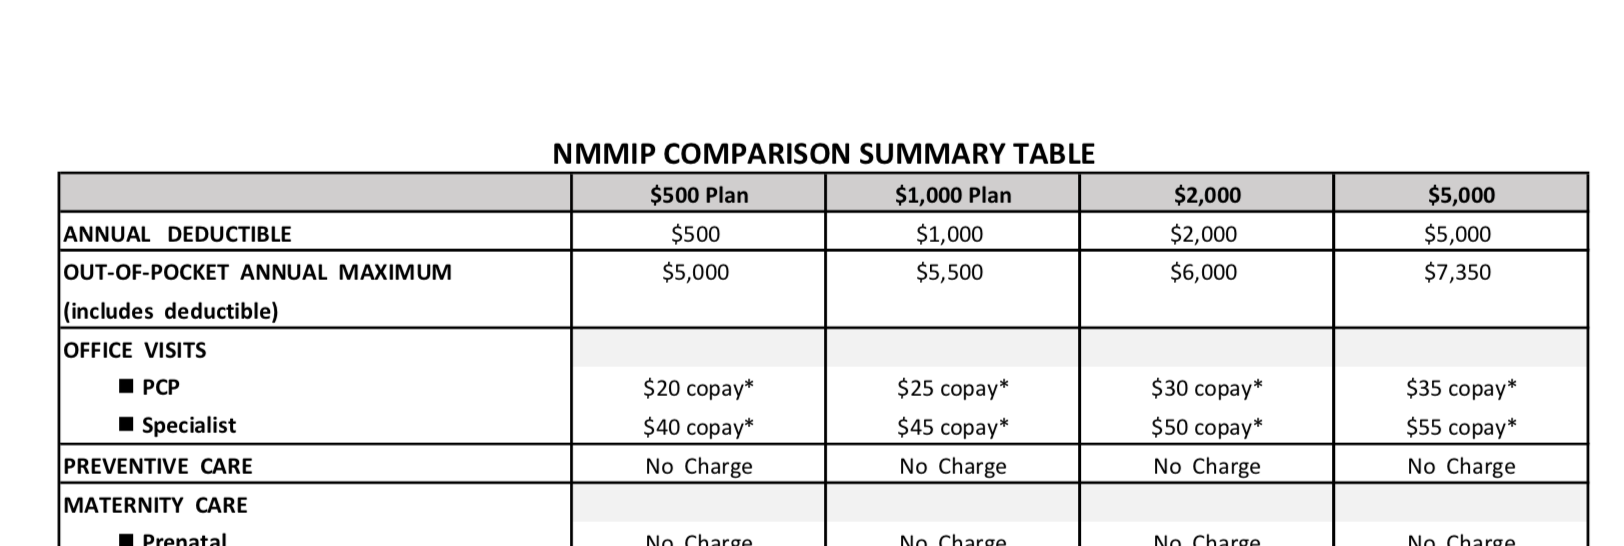 NMMIP Comparison Summary